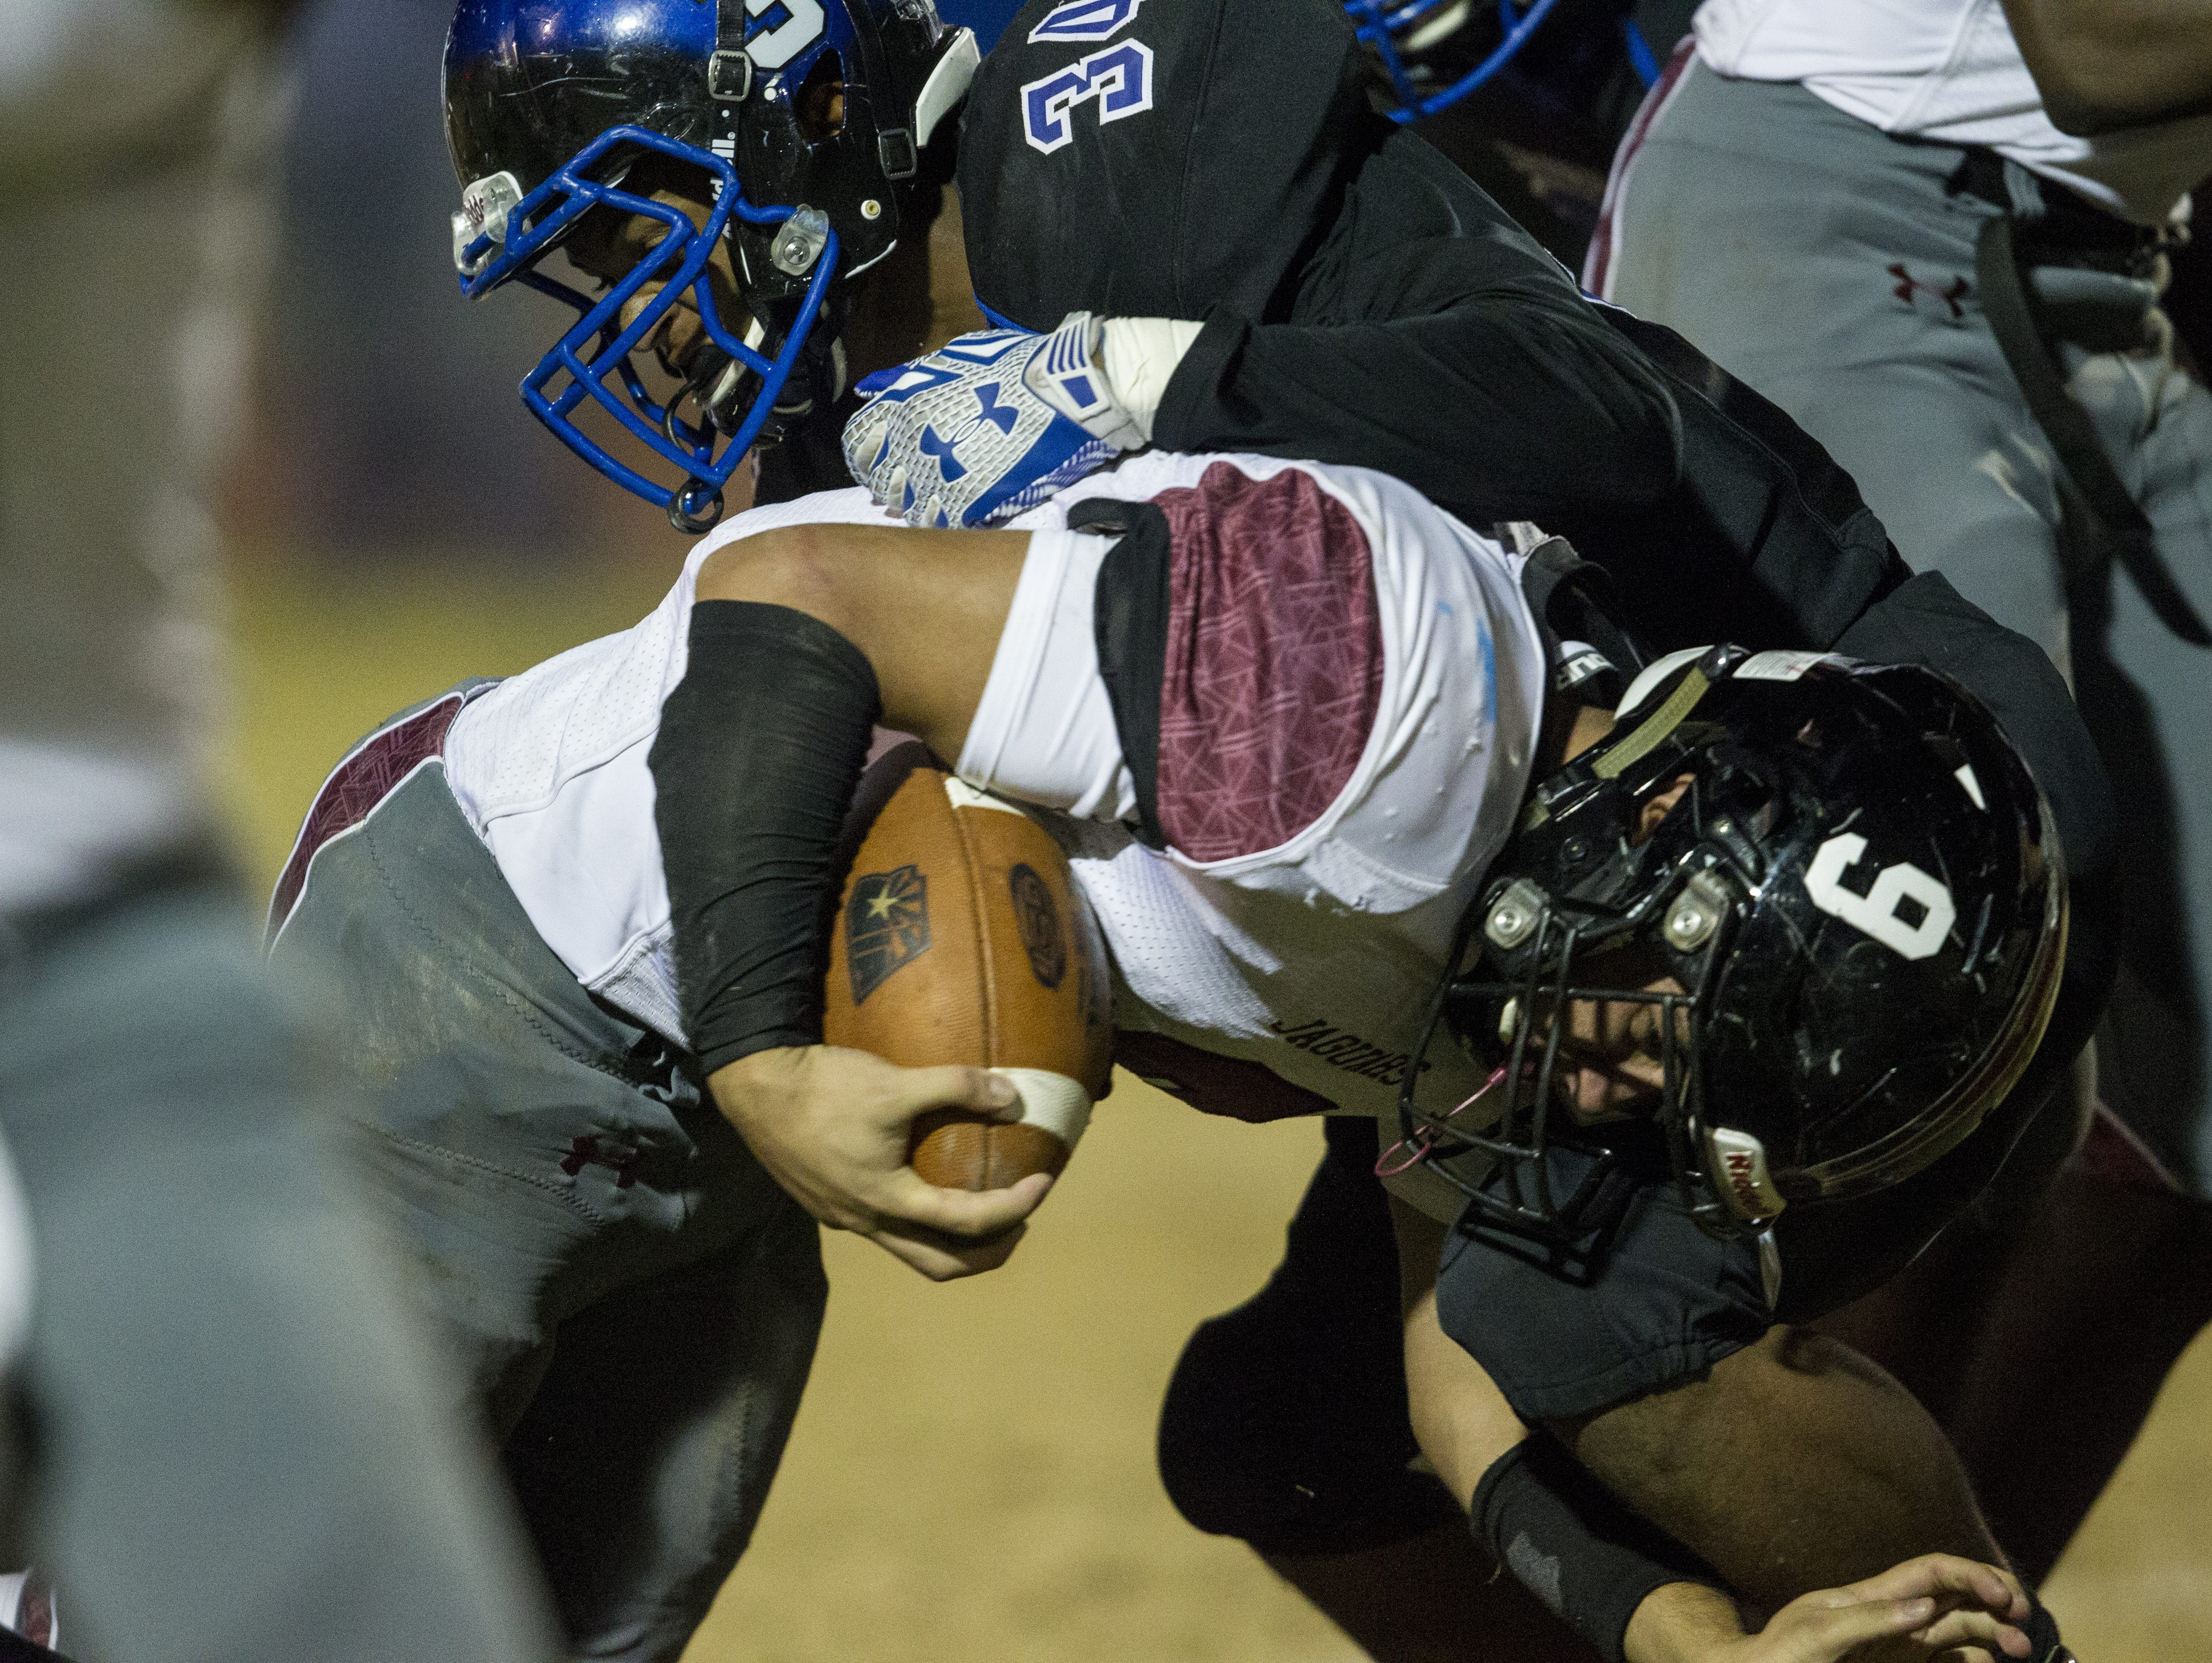 Desert Ridge's Stephan Gomez rushes against Chandler in the second quarter on Friday, Nov. 20, 2015 during the Division I state semifinals at Hamilton High School in Chandler, Ariz.